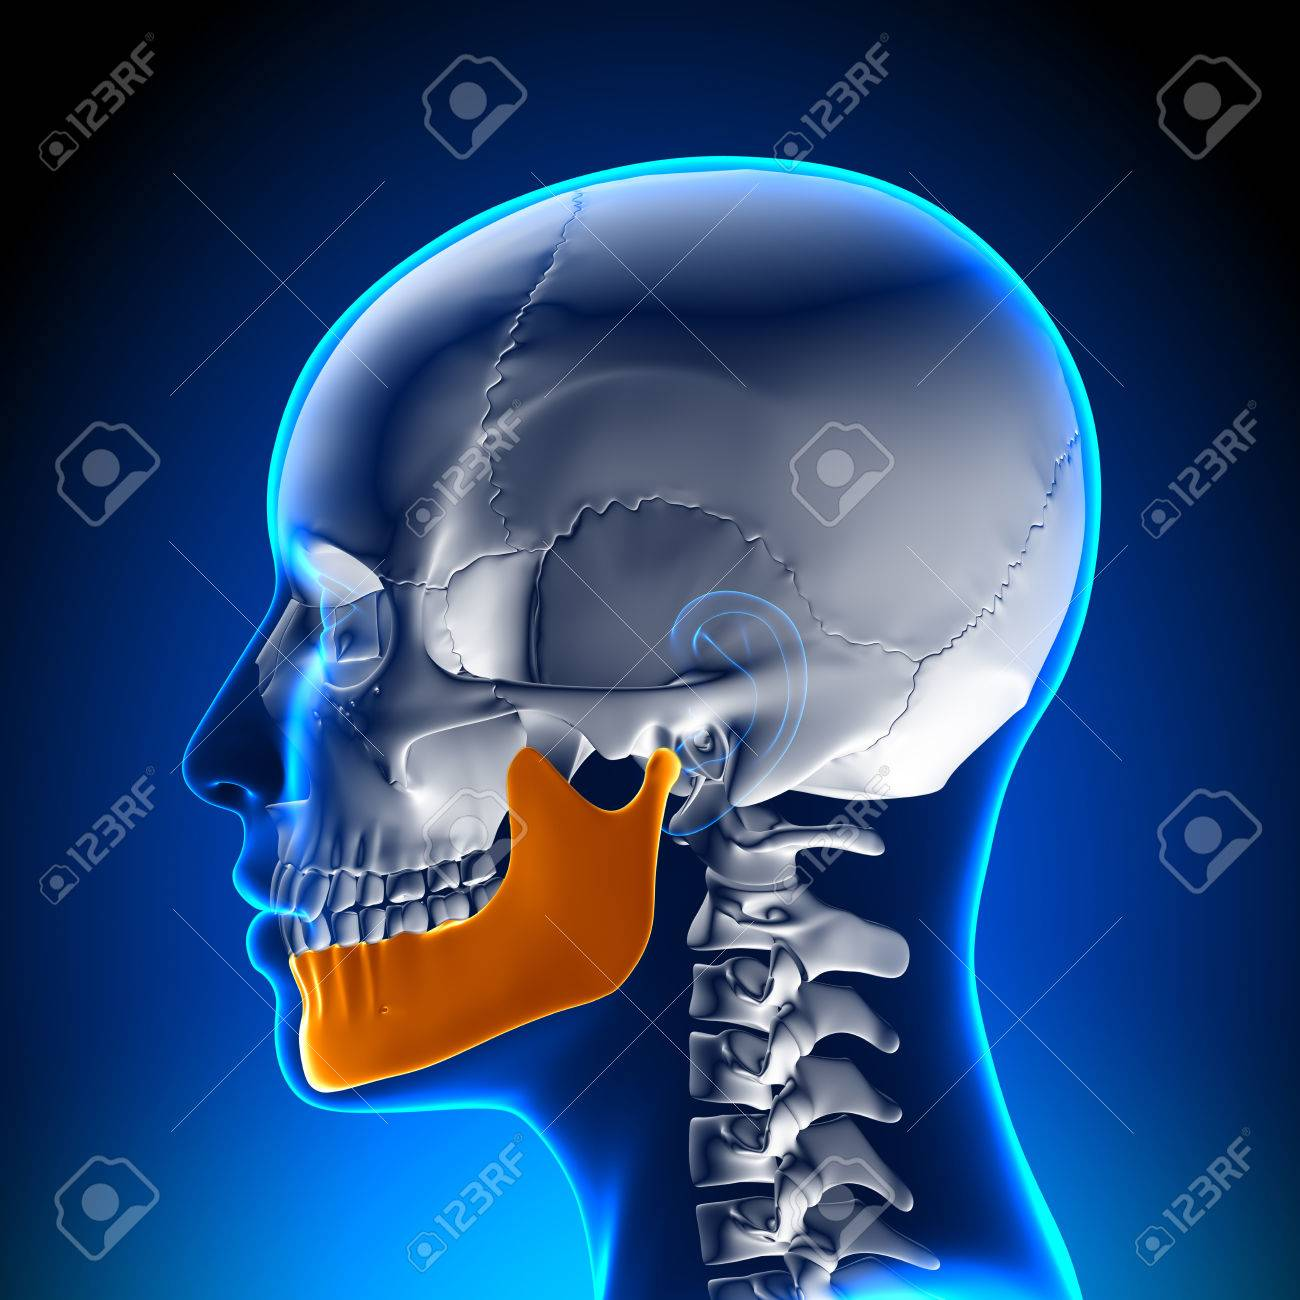 Female Mandible - Jaw Anatomy Stock Photo, Picture And Royalty Free ...